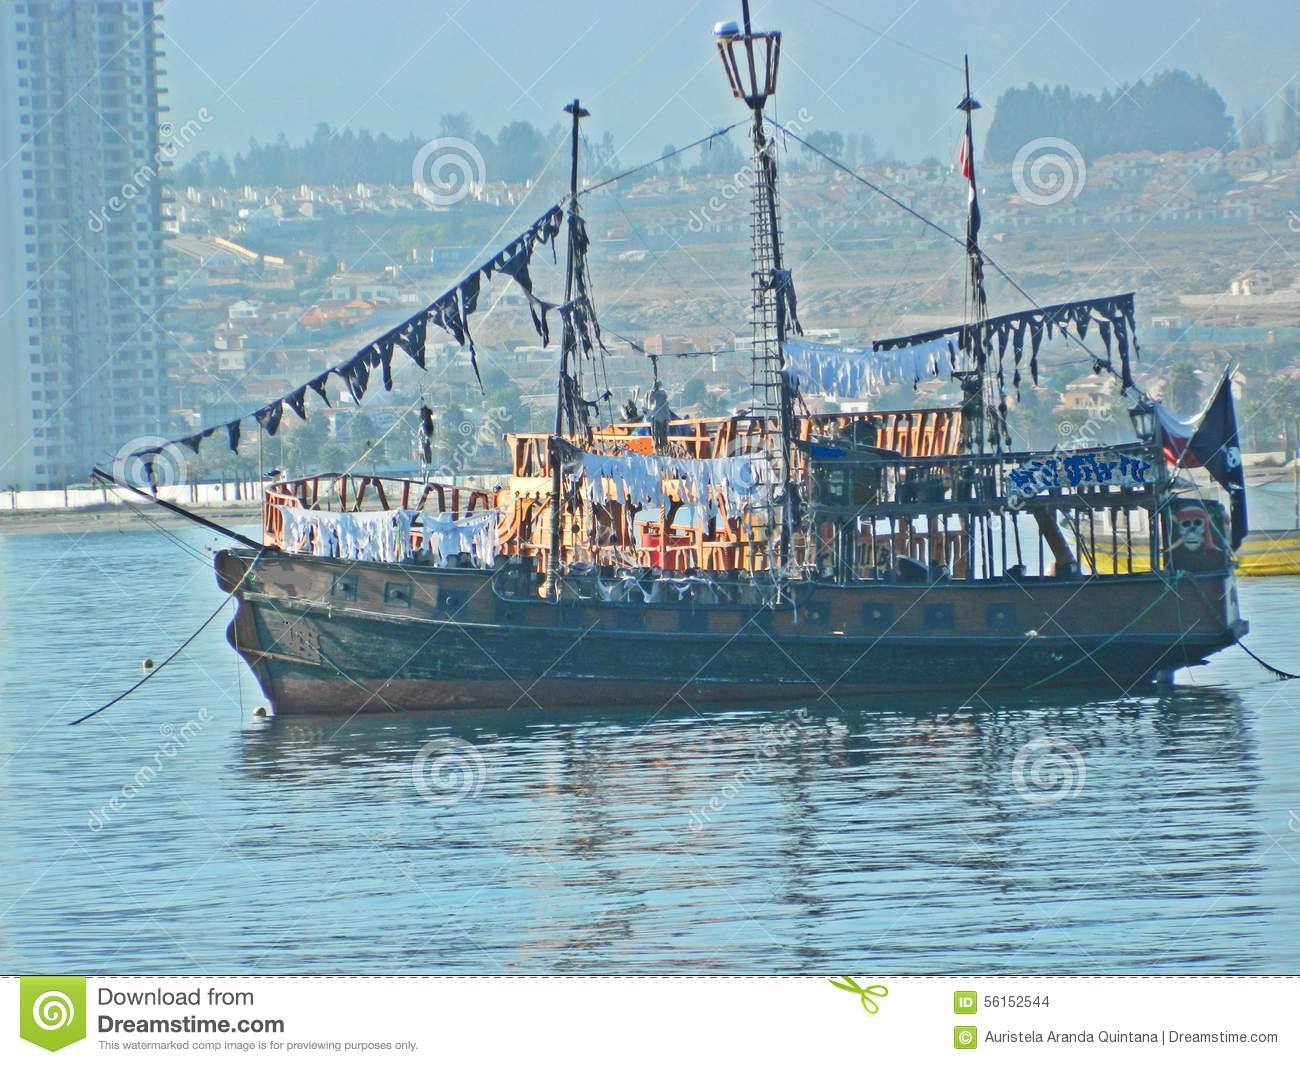 Pirate Ship on the beach in Chile